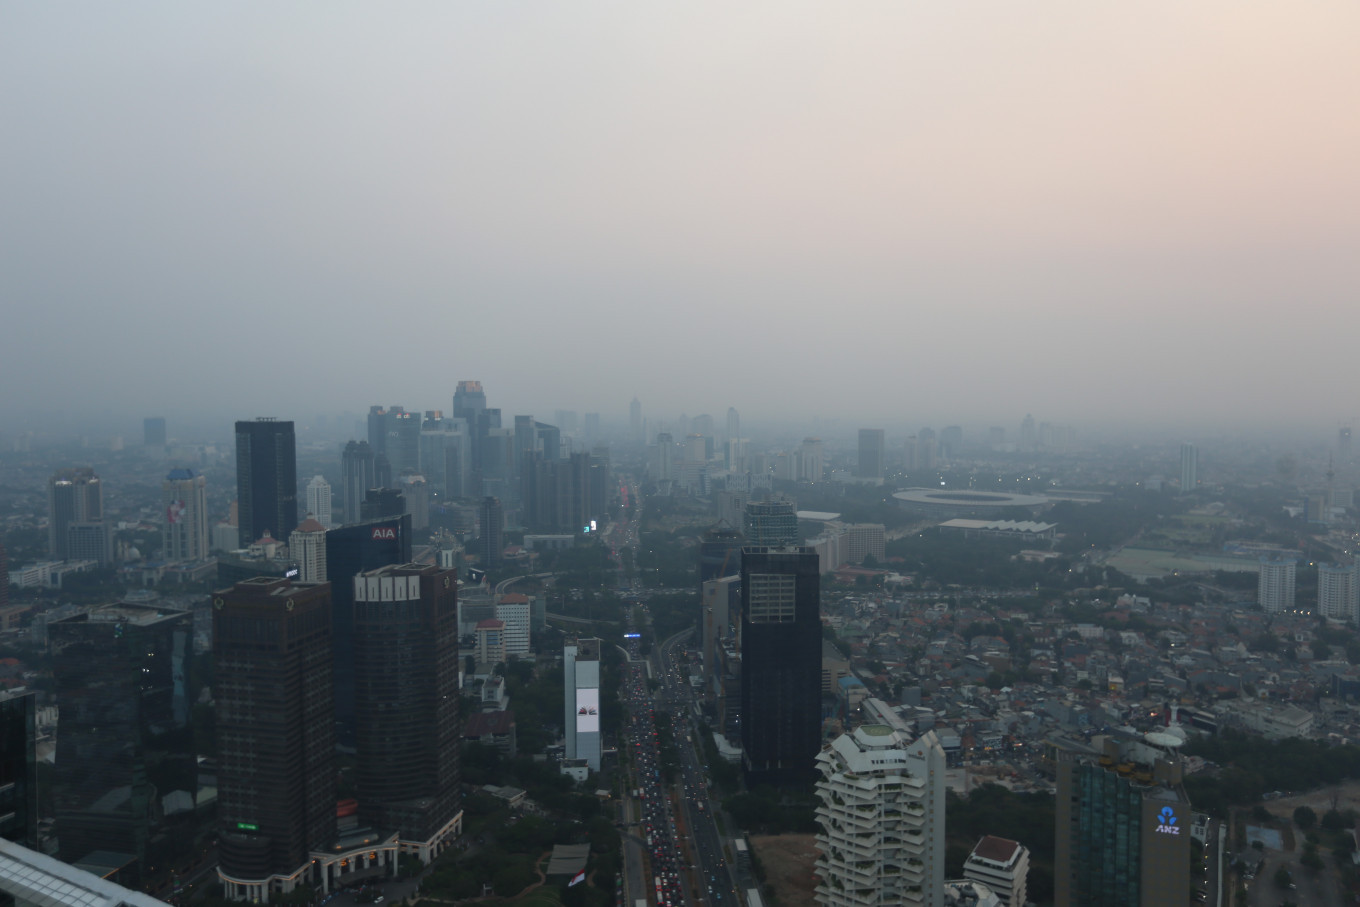 Air pollution linked to increase in bipolar disorder and depression